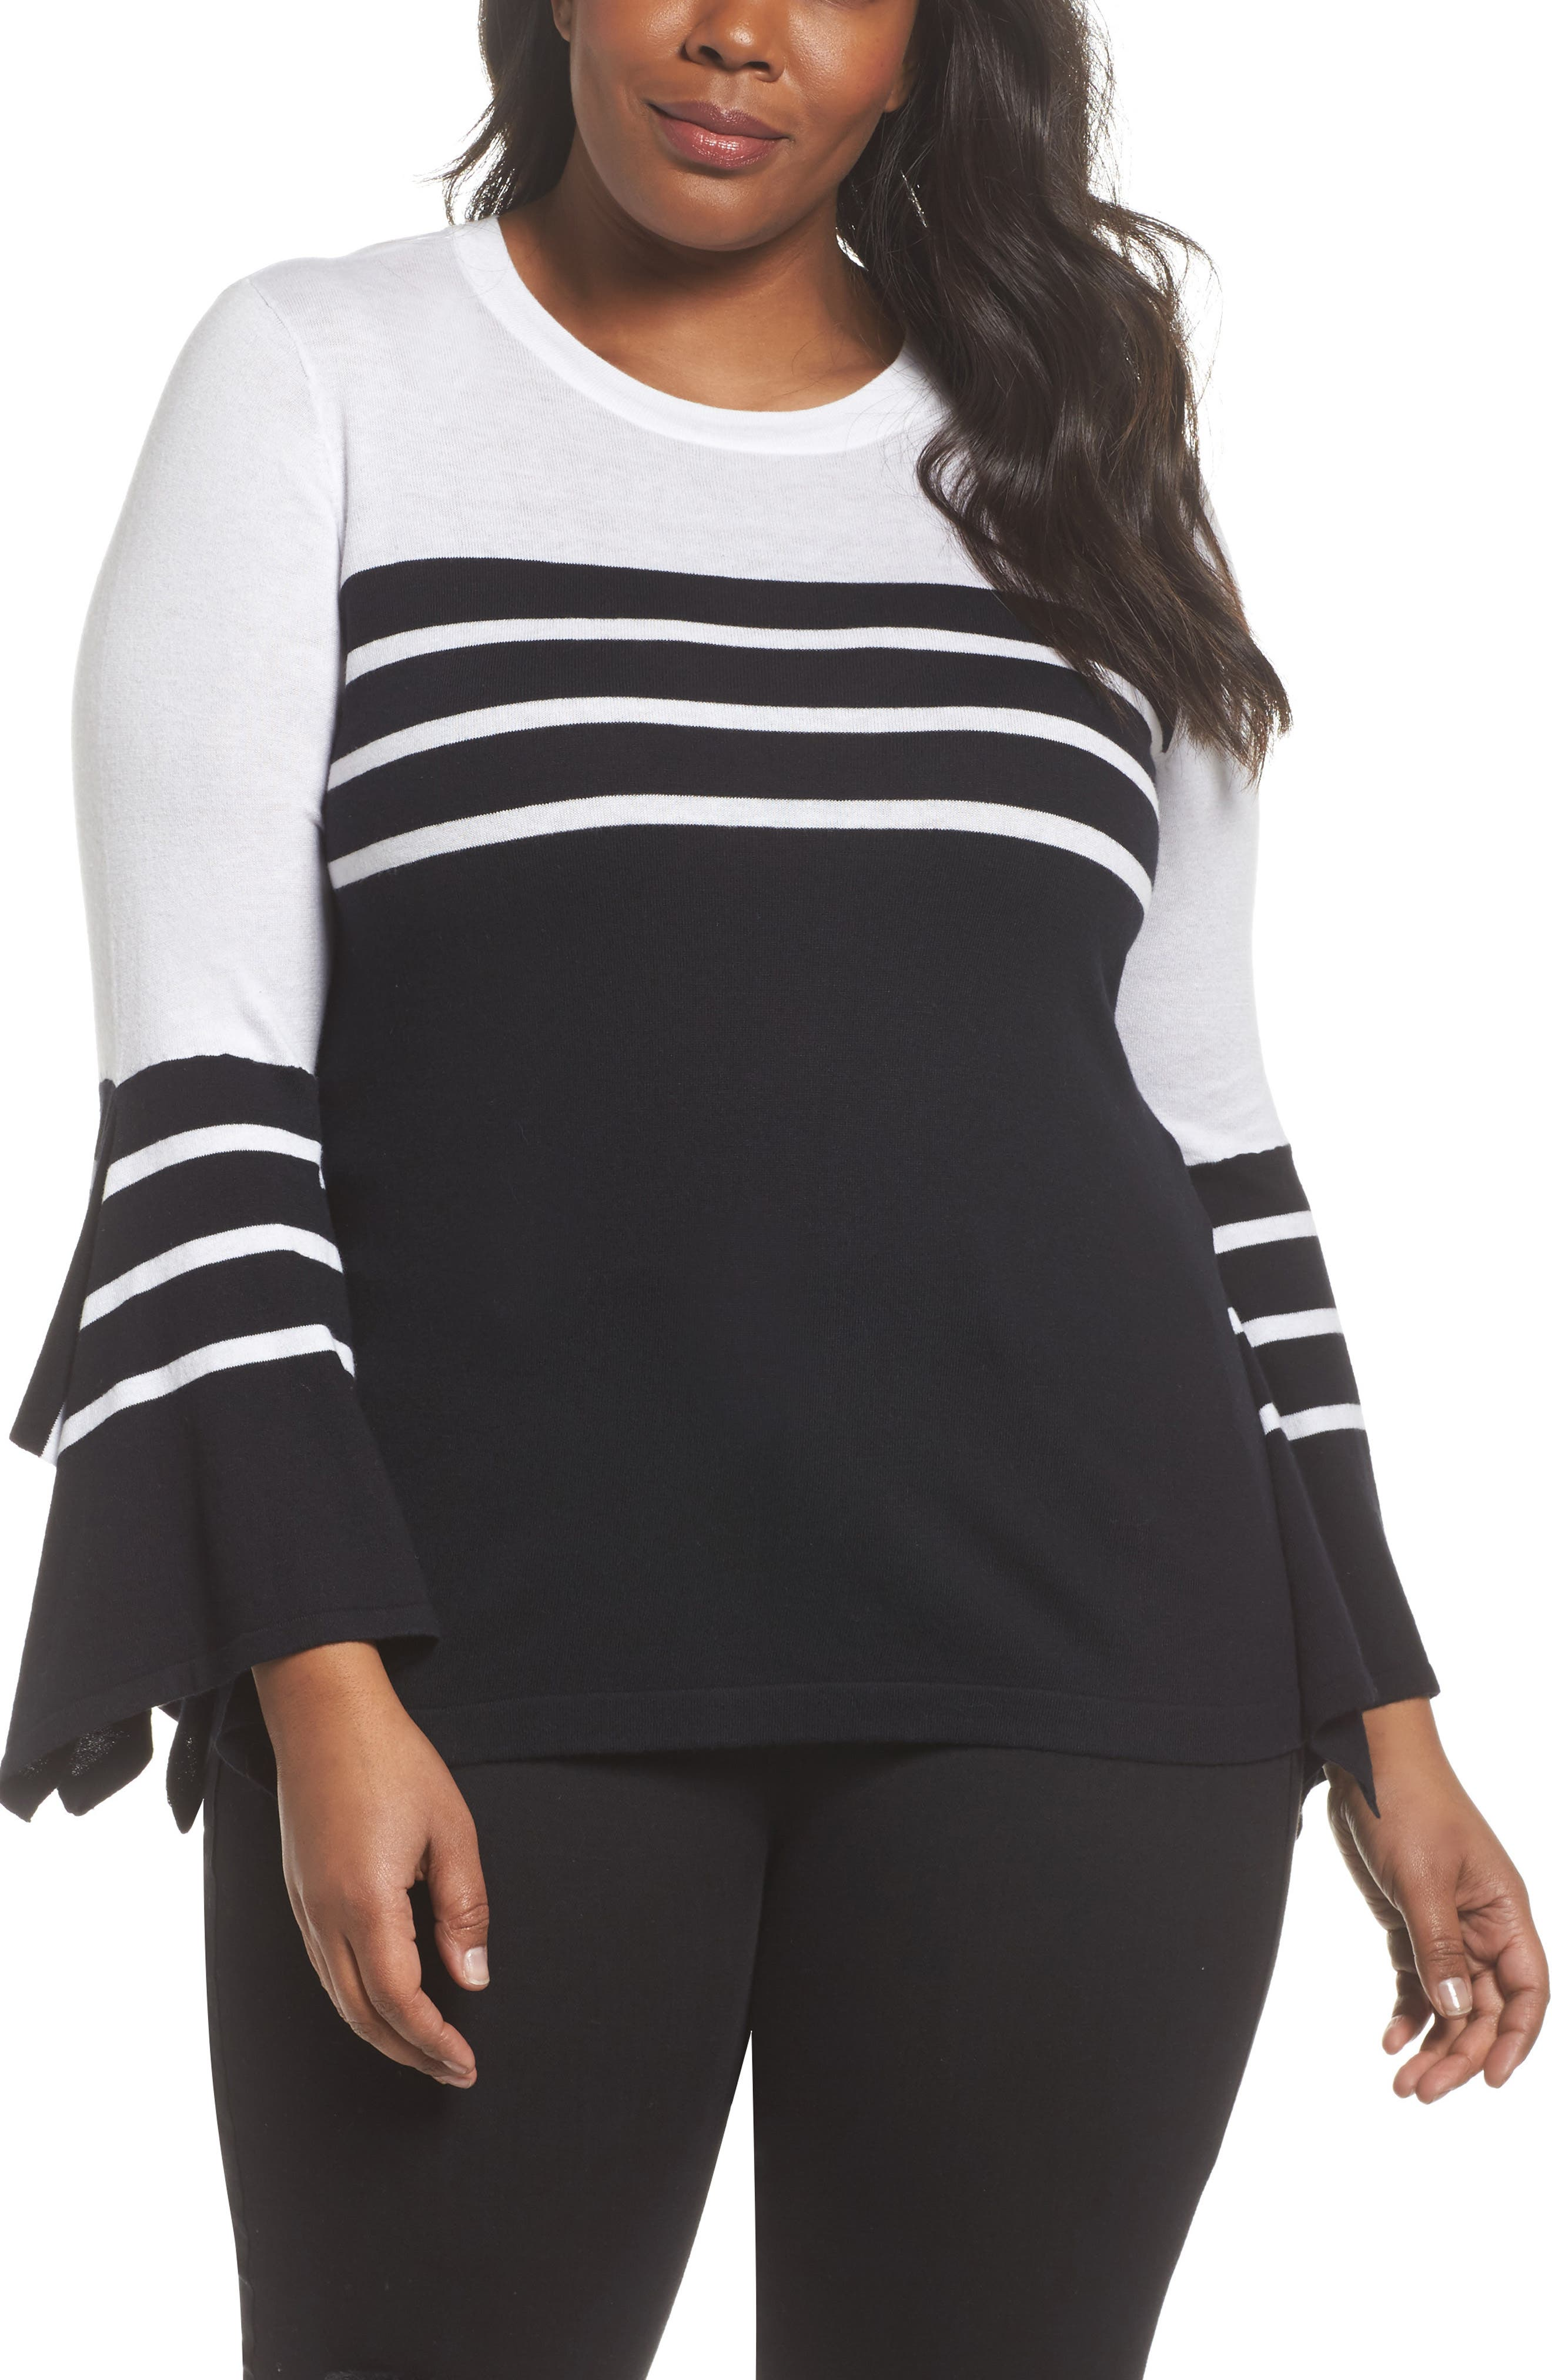 Main Image - Vince Camuto Handkerchief Sleeve Stripe Sweater (Plus Size)